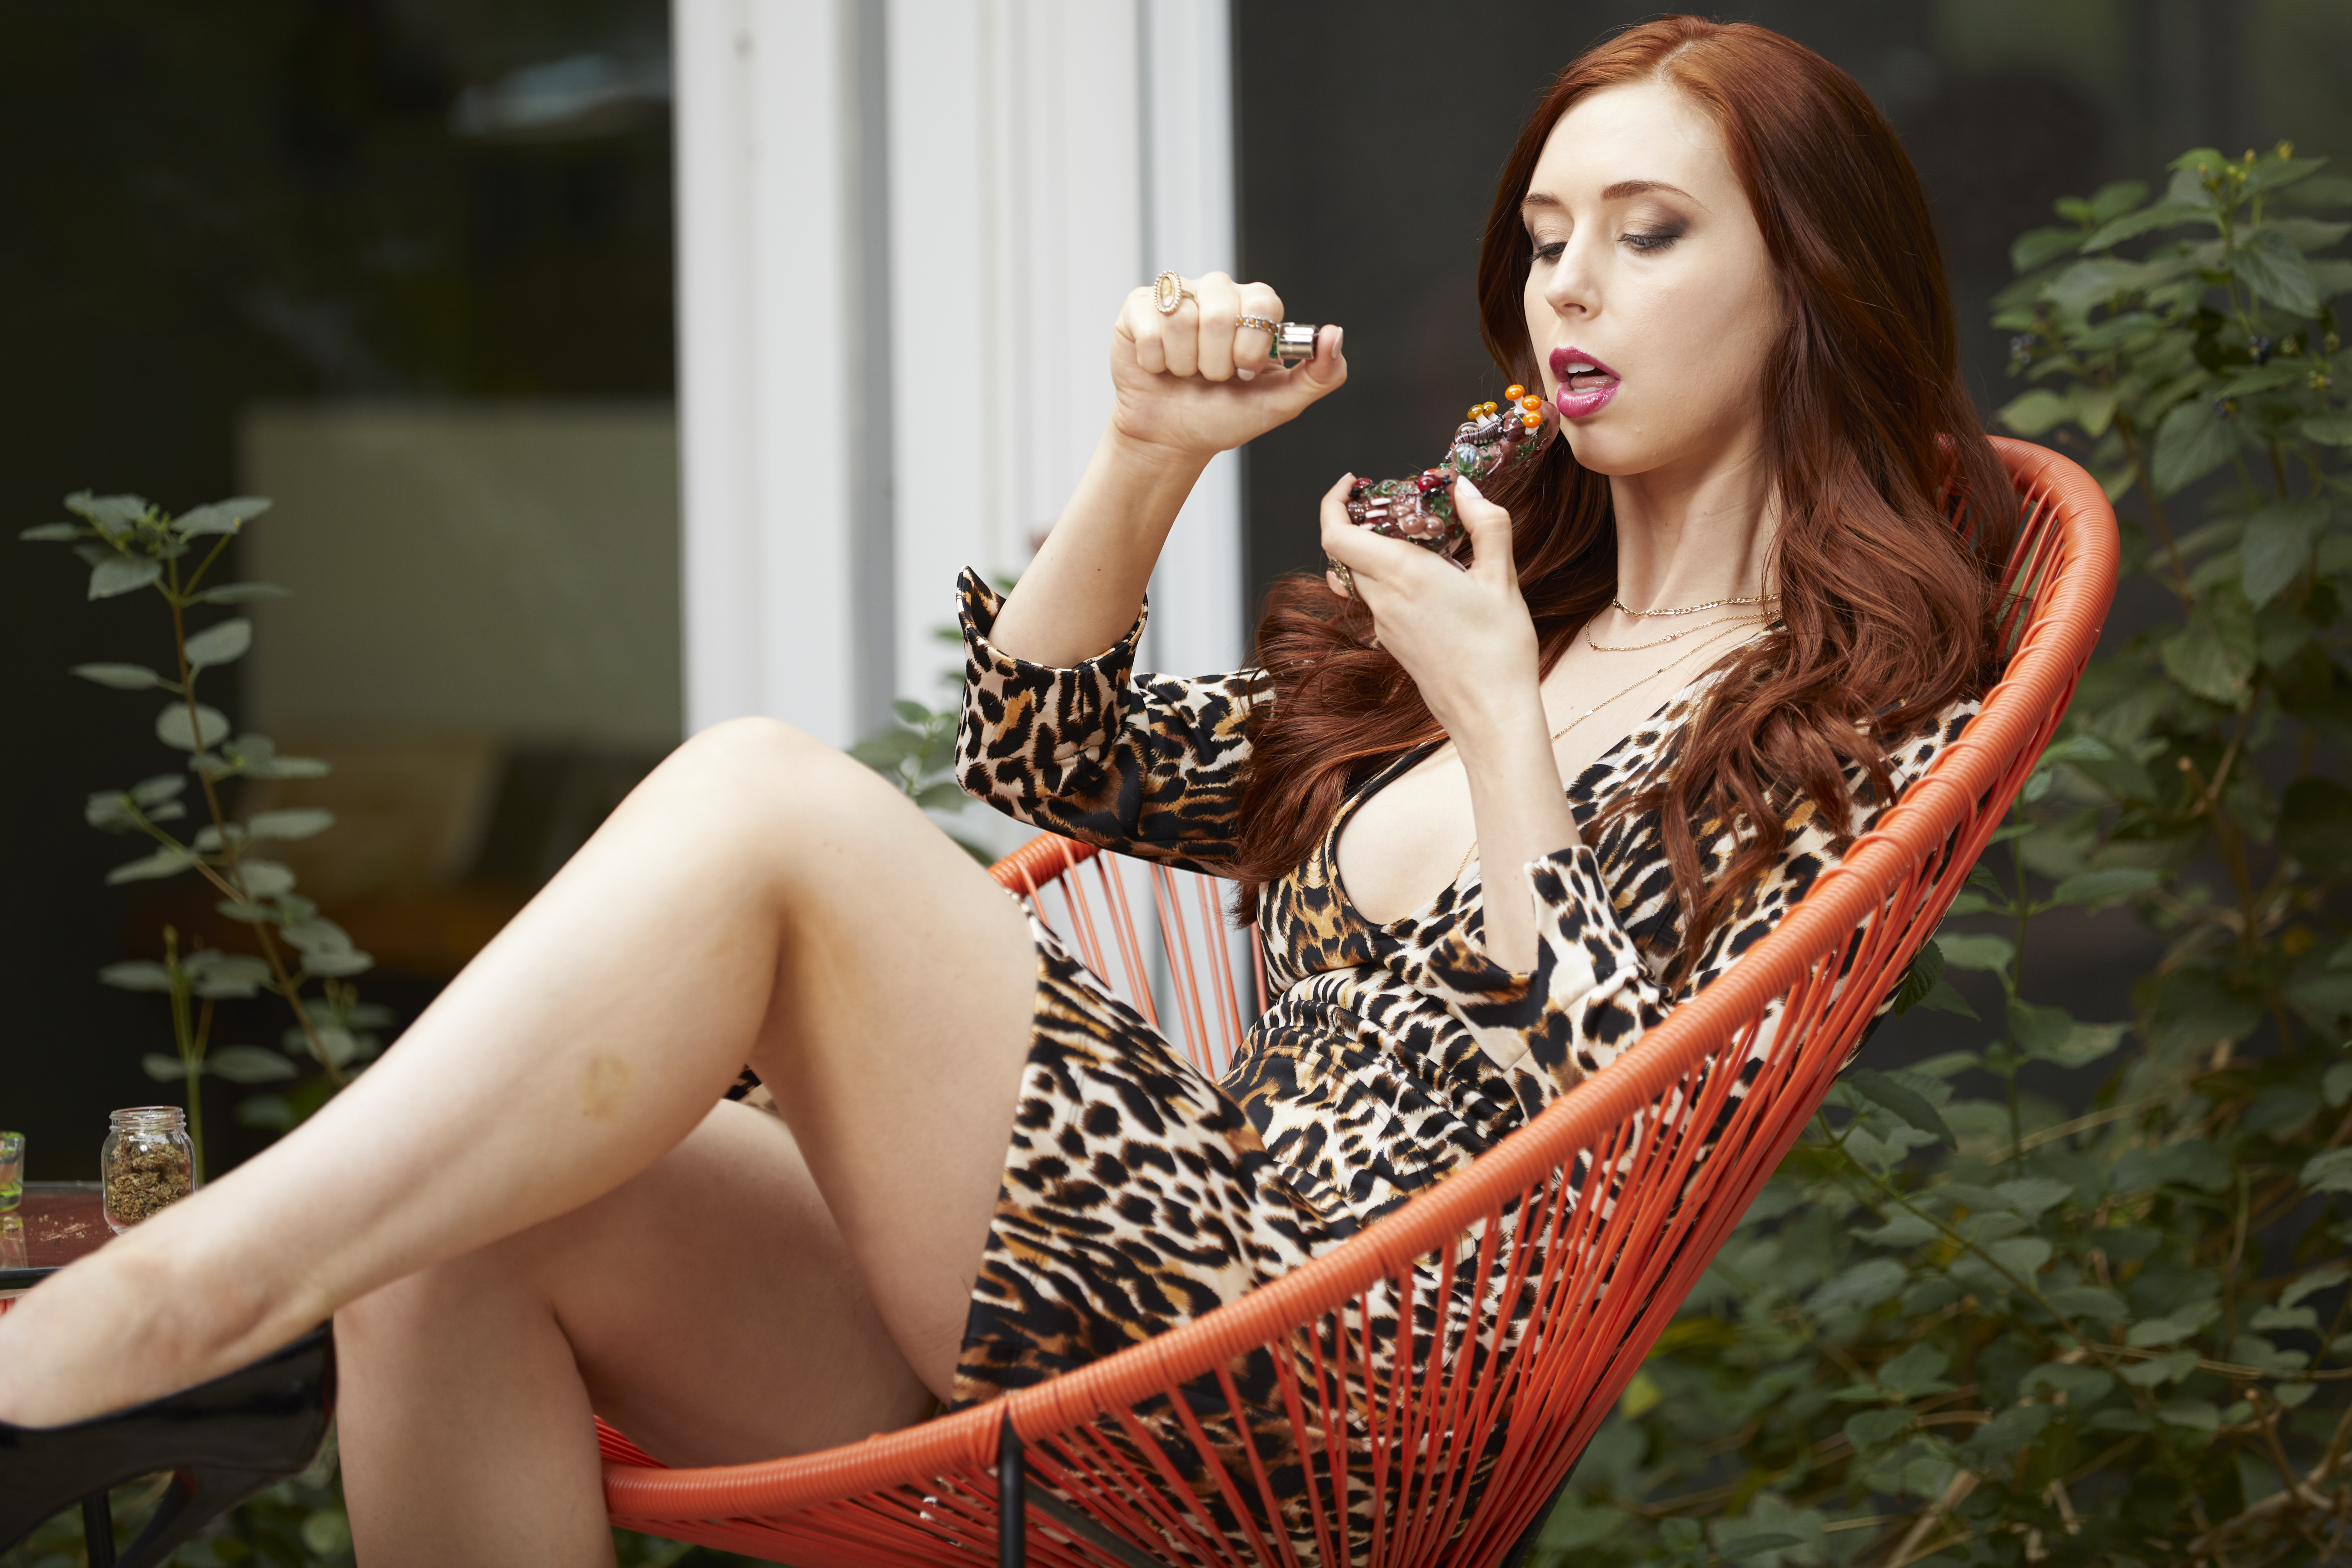 redhead babe getting high in orange chair